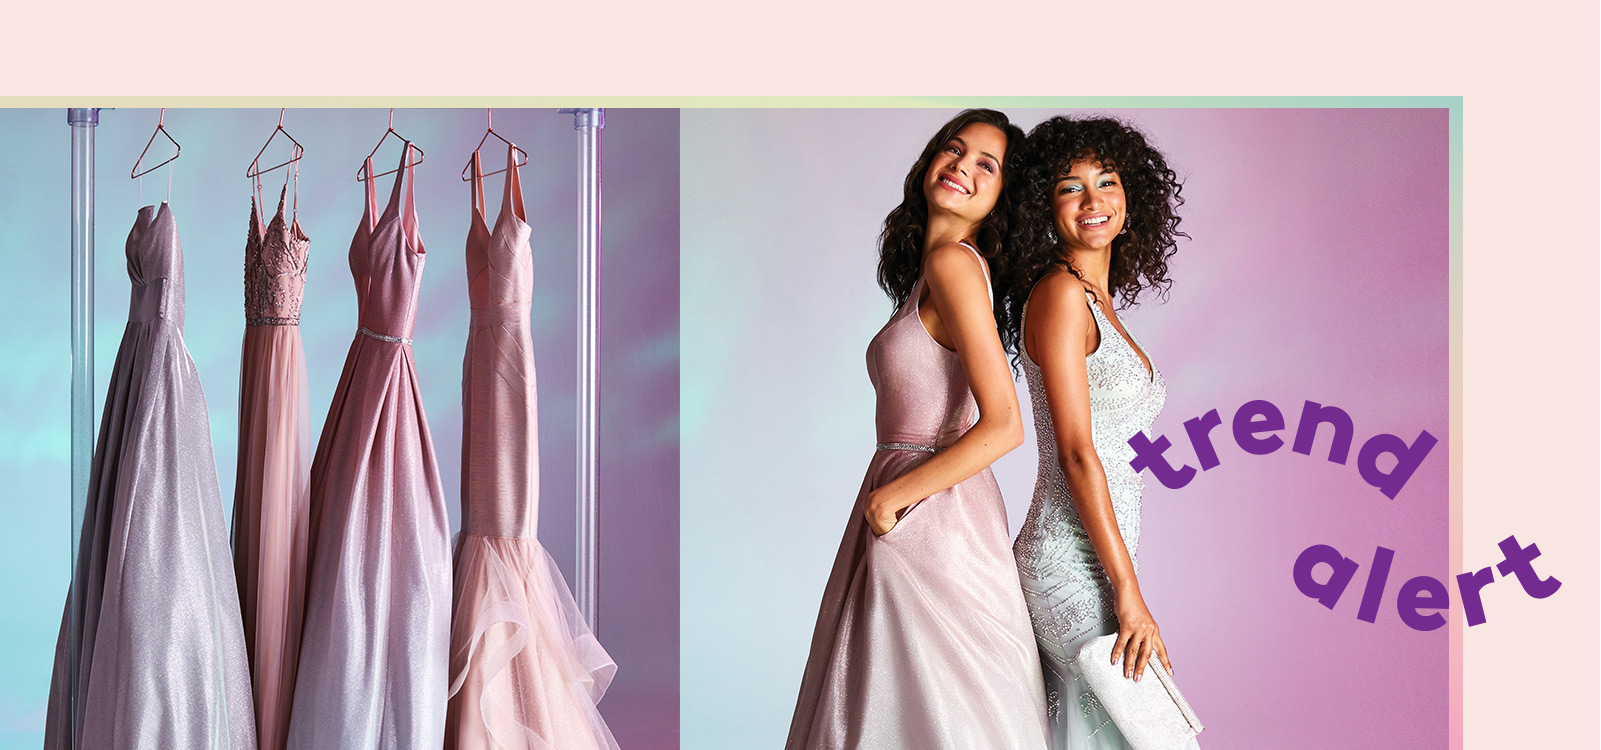 A clothes rack with trendy prom dresses and two girls wearing long colorful prom dresses.